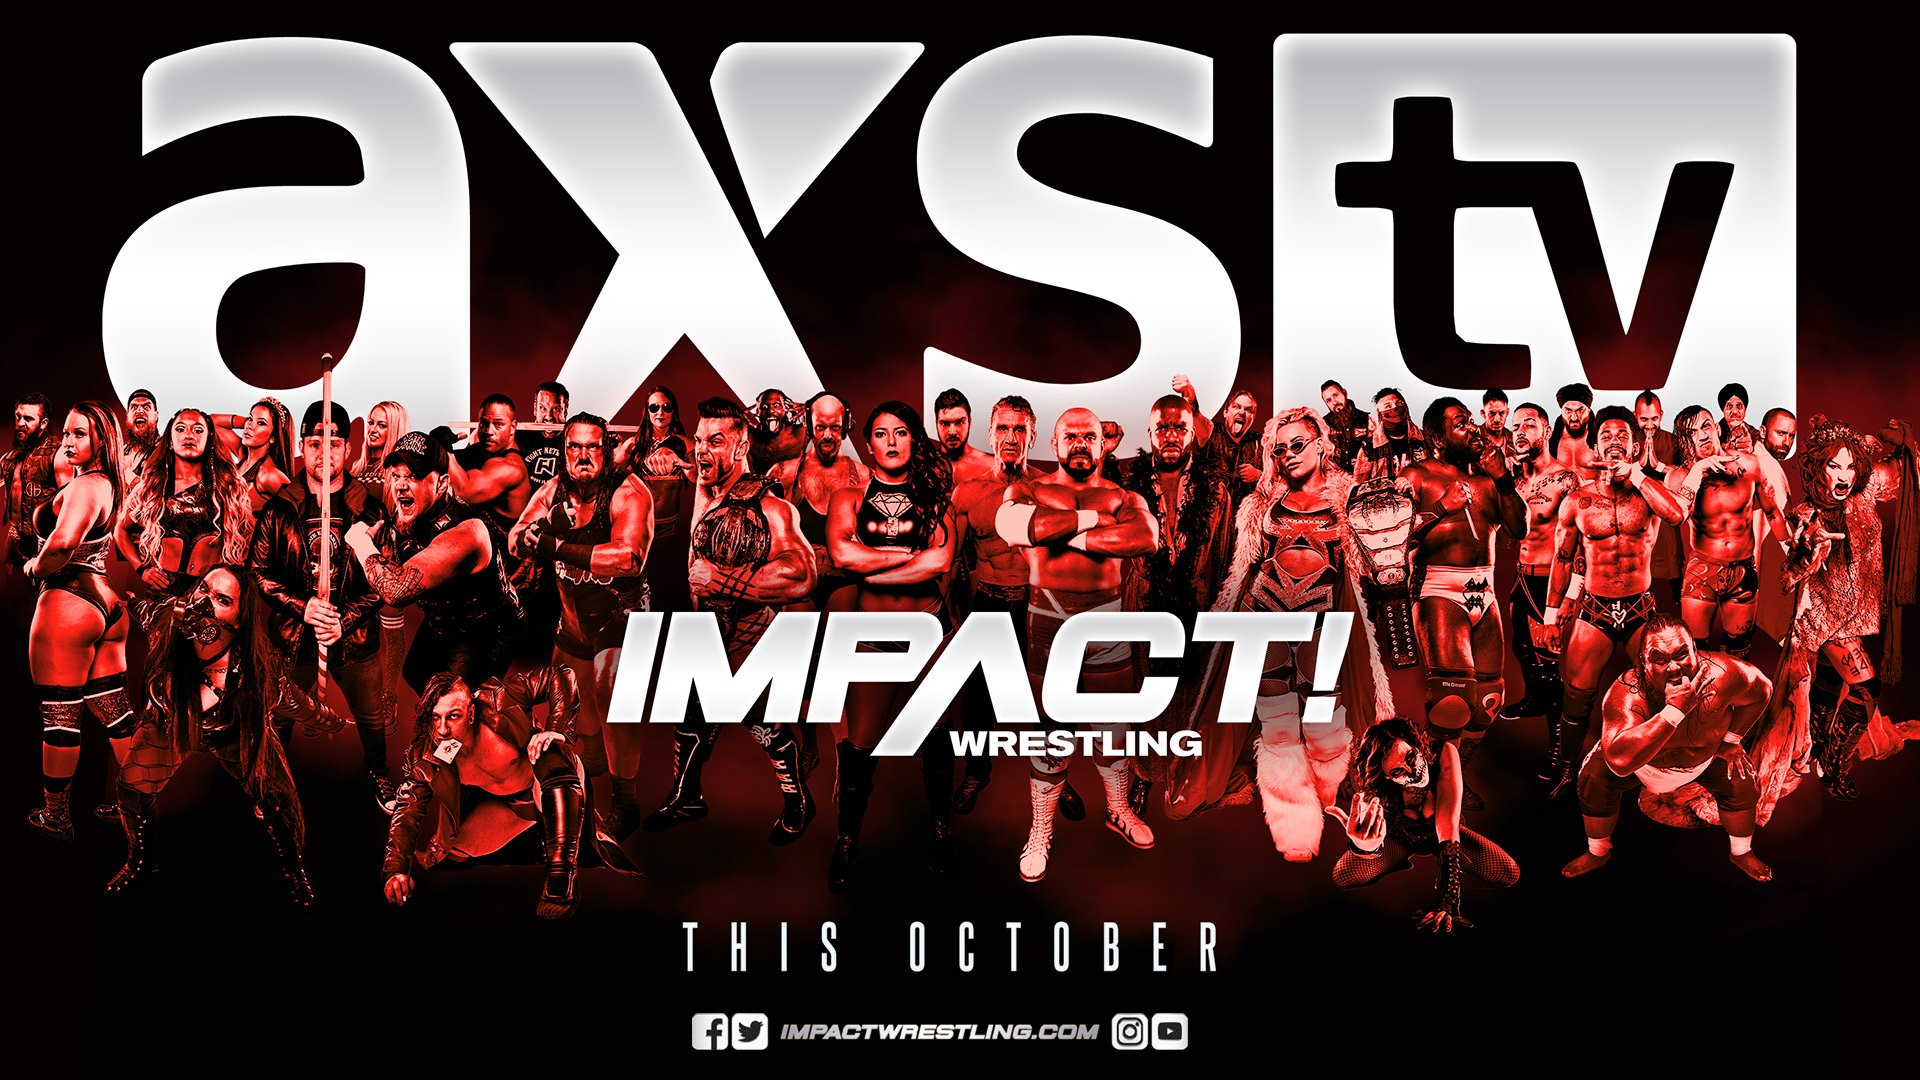 Impact Wrestling: #IMPACT Wrestling Announces Move to @AXSTV  https://t.co/8sU3fuNdgr.  Tweet by @IMPACTW...